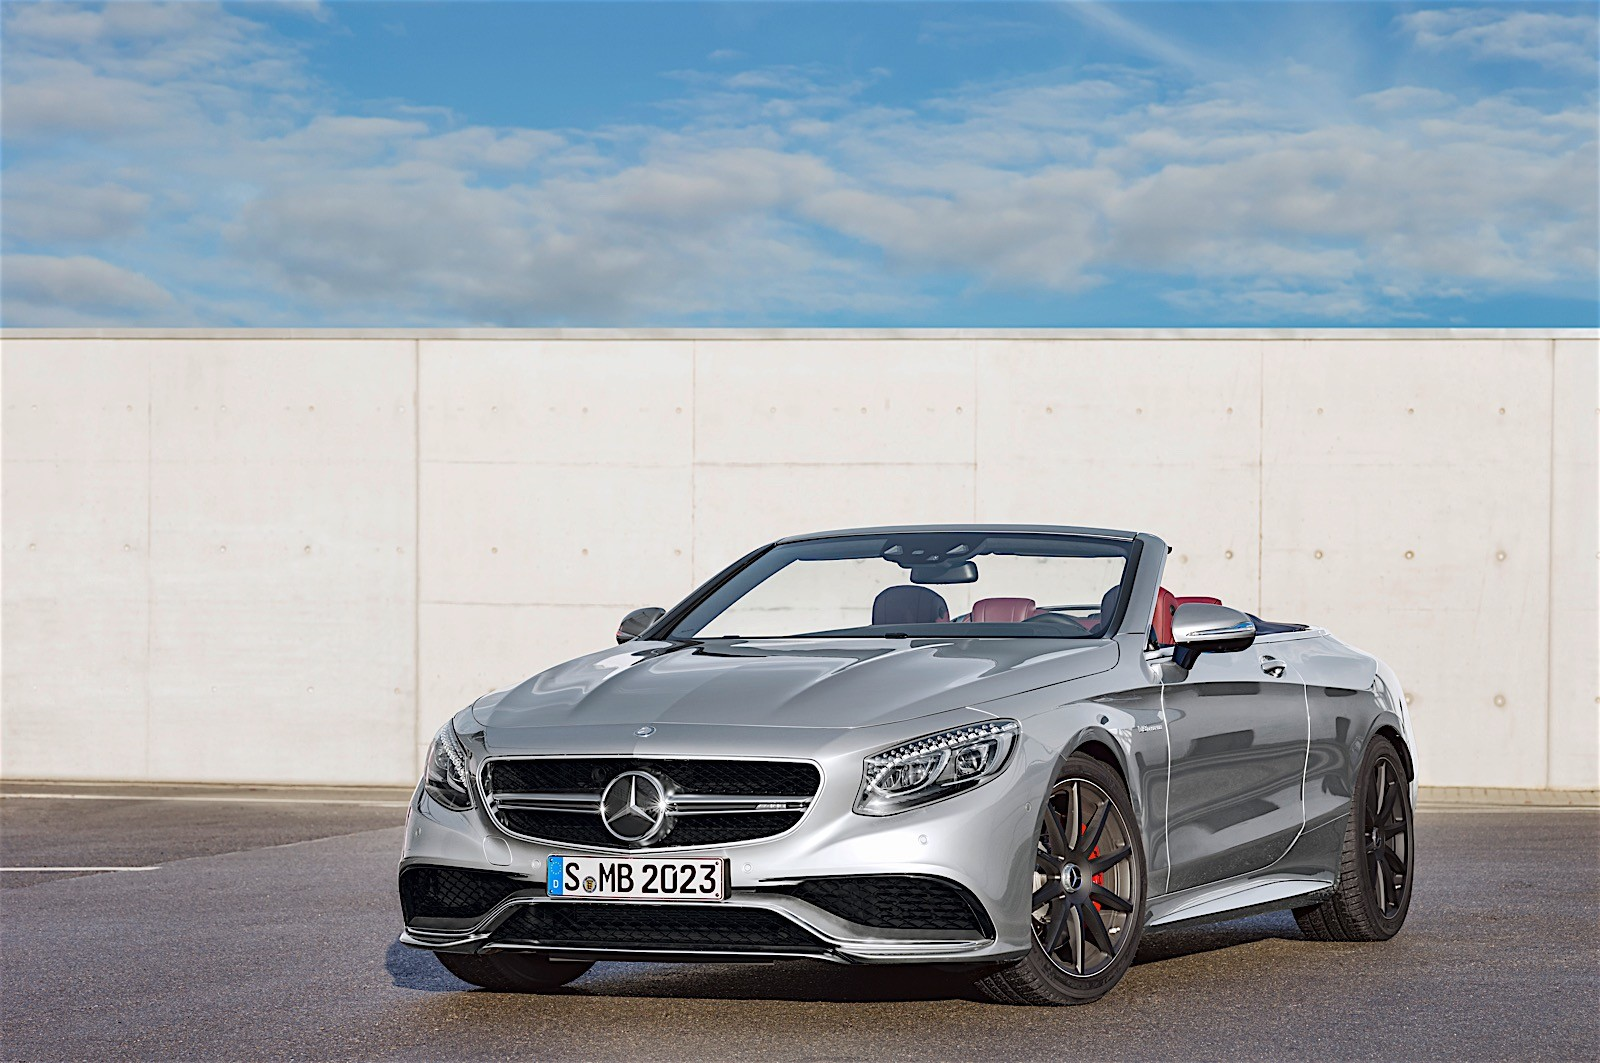 Mercedes amg unveils anniversary s63 cabriolet edition 130 for Who invented the mercedes benz